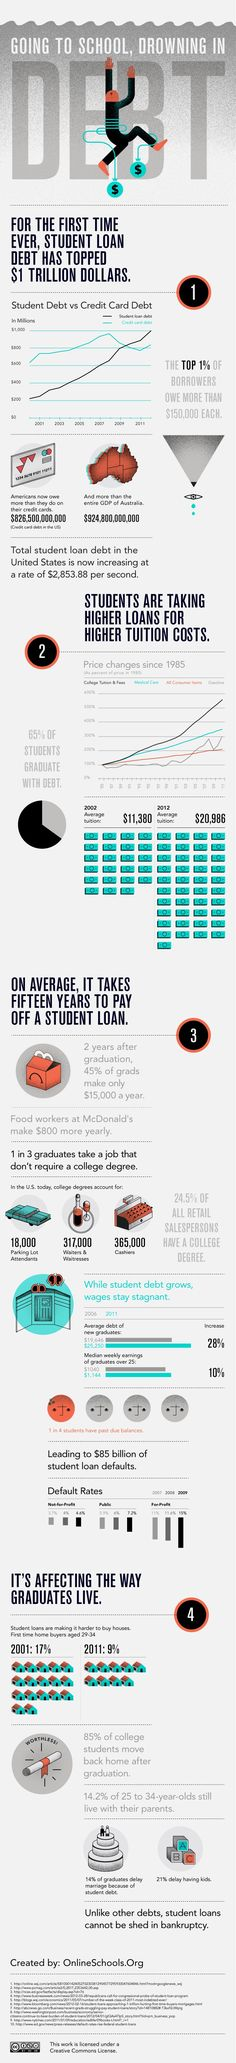 Student Debt Infographic #education #hackingedu